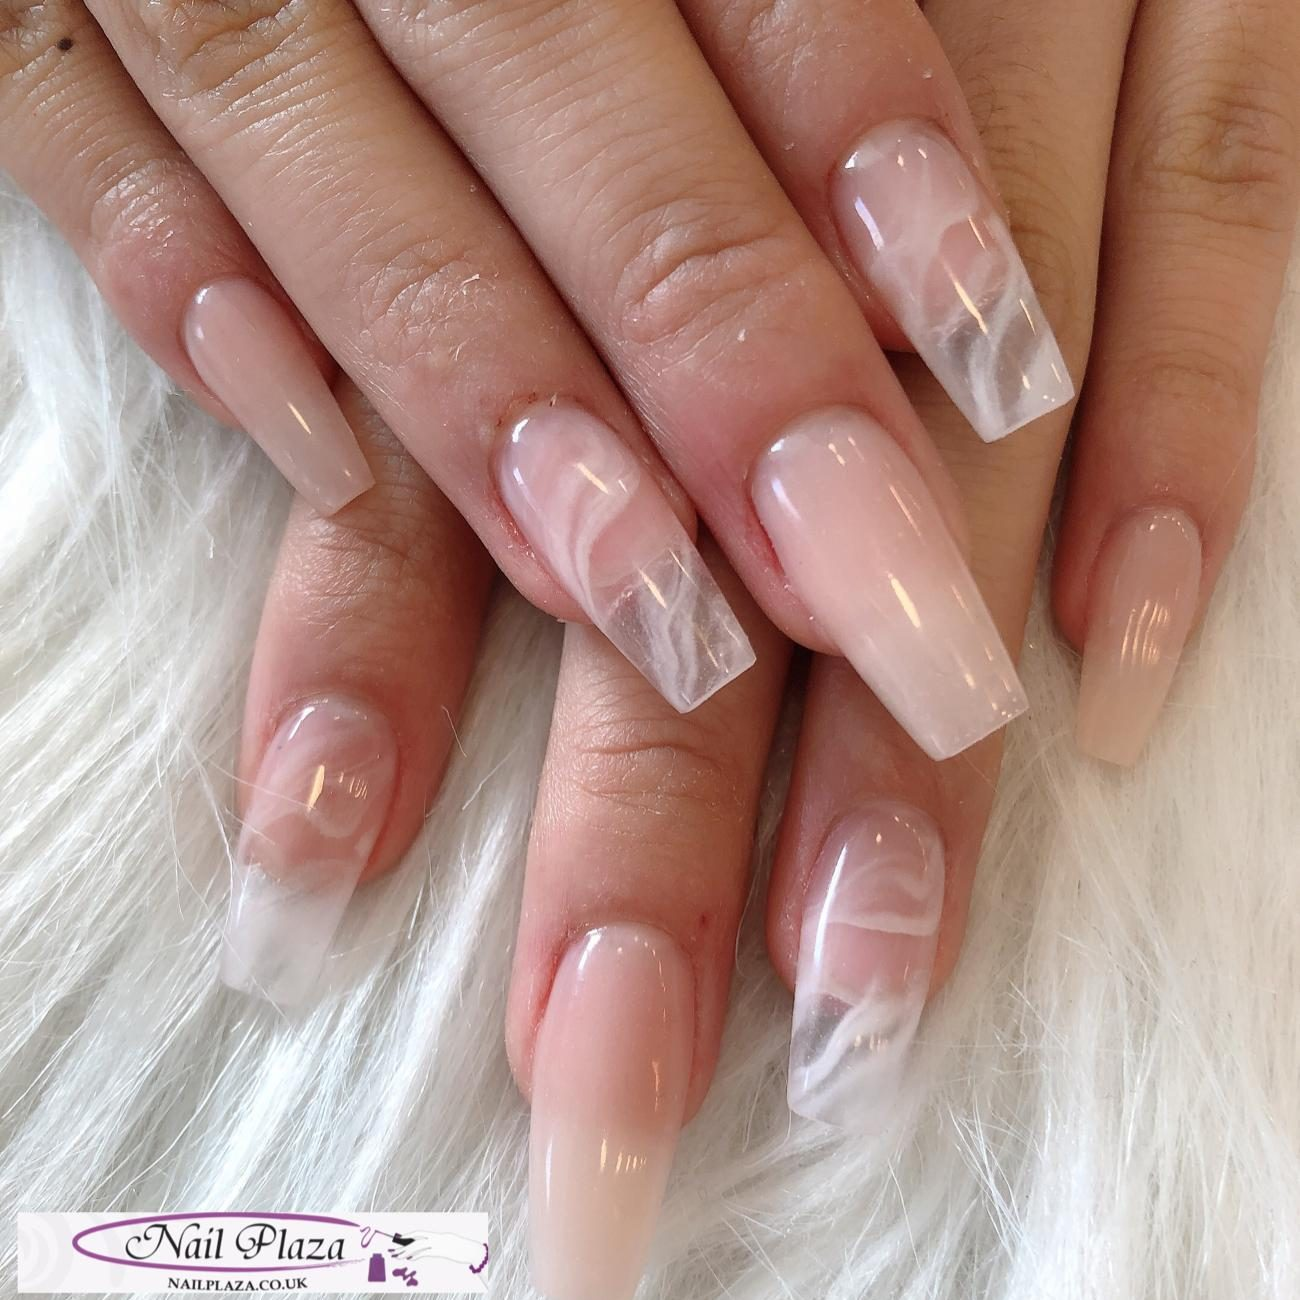 nail-plaza-twickenham-nail-design-061120-4